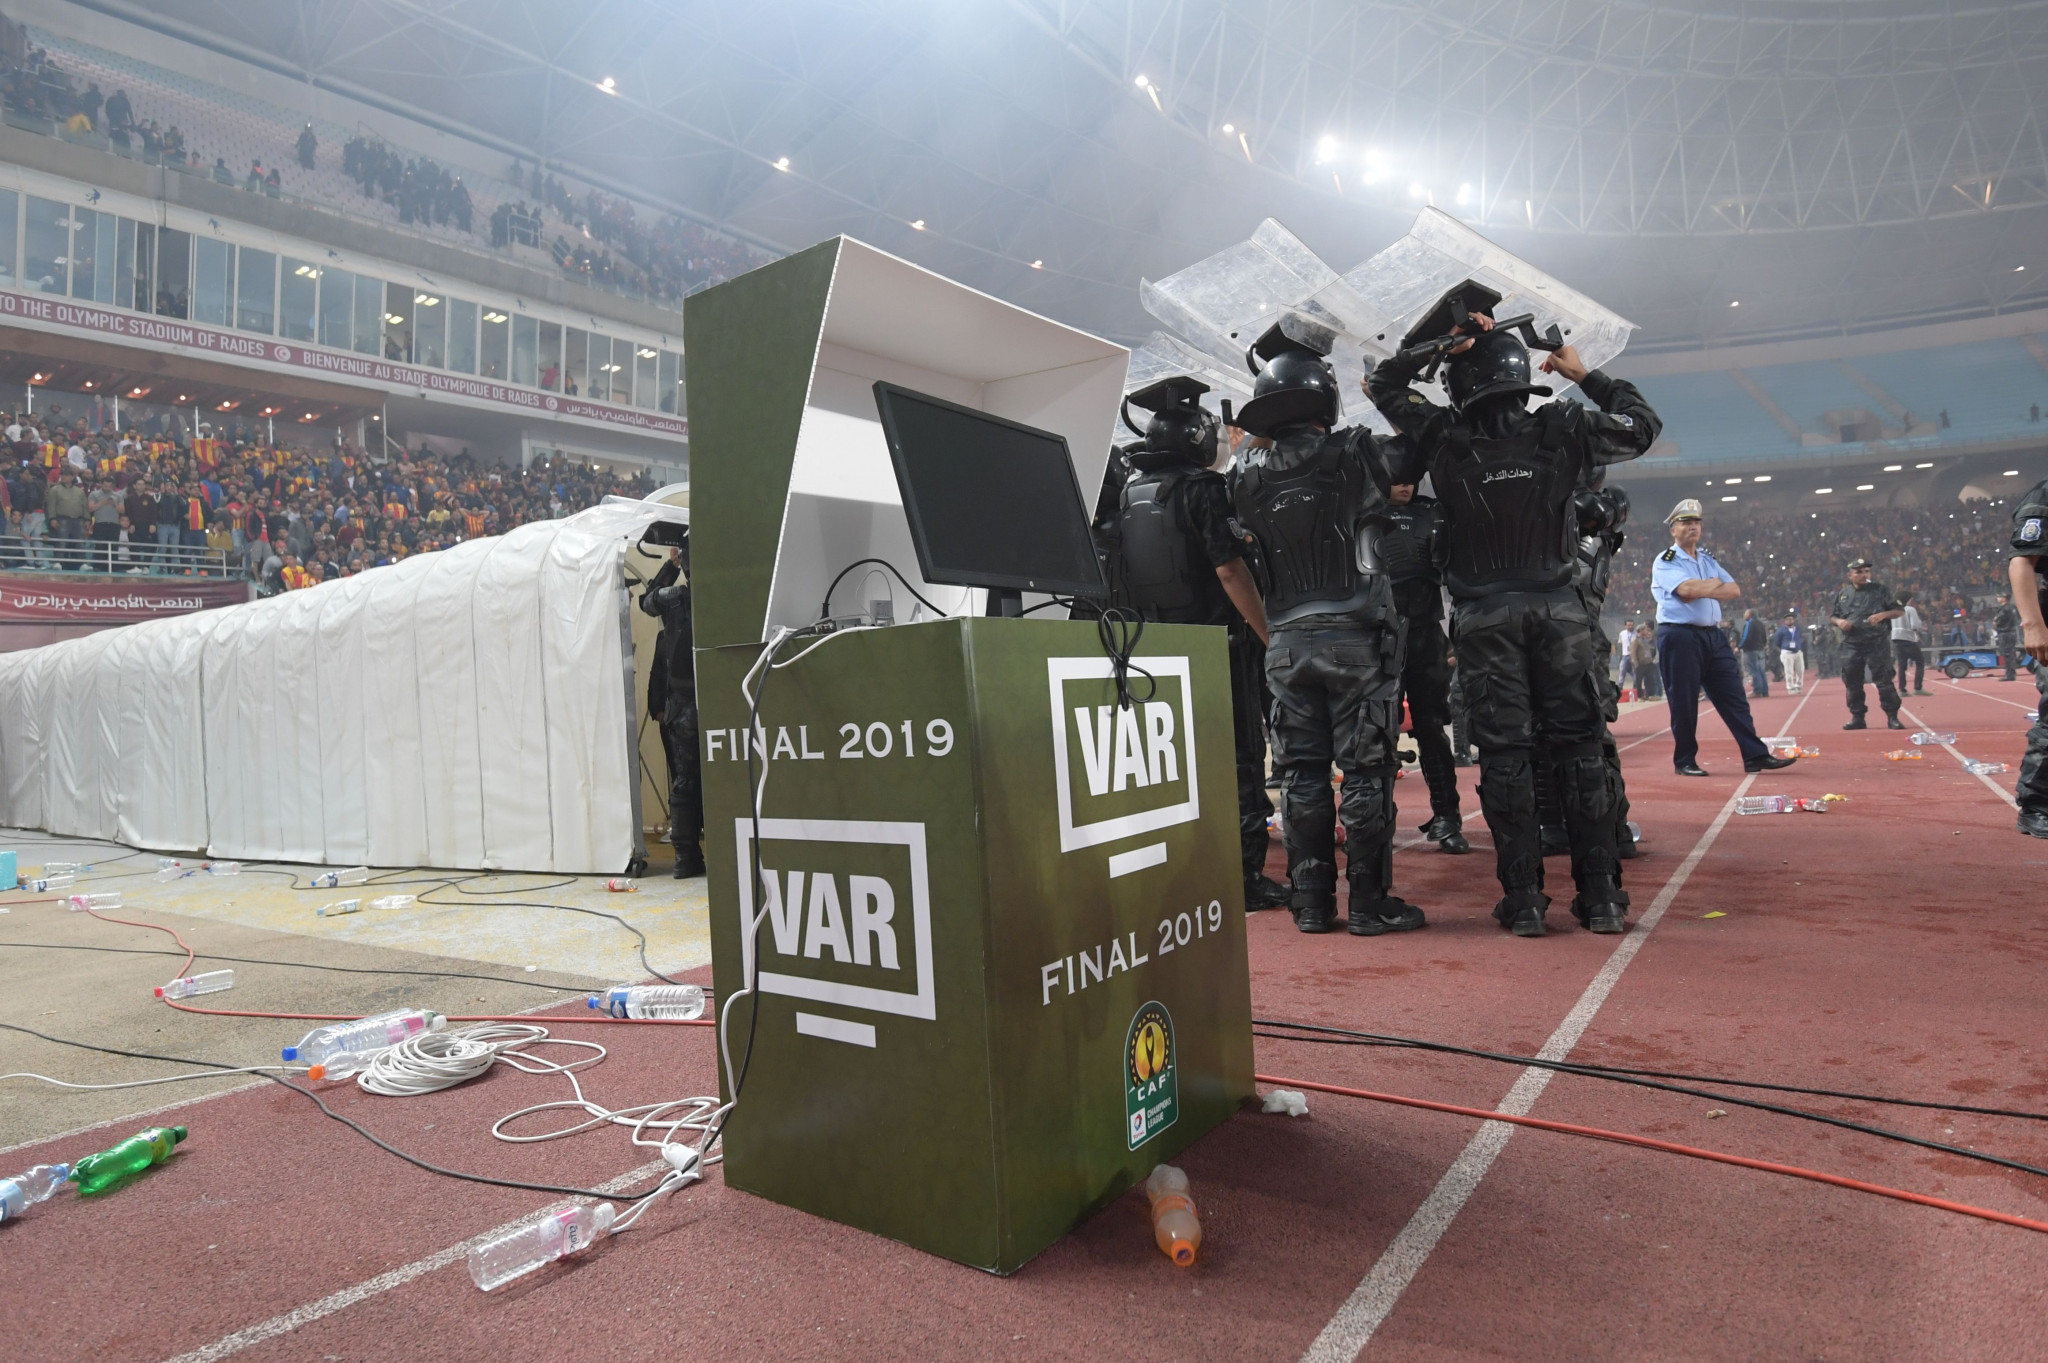 Reports claim the VAR system was unavailable due to a fault but the players had not been informed ©Getty Images